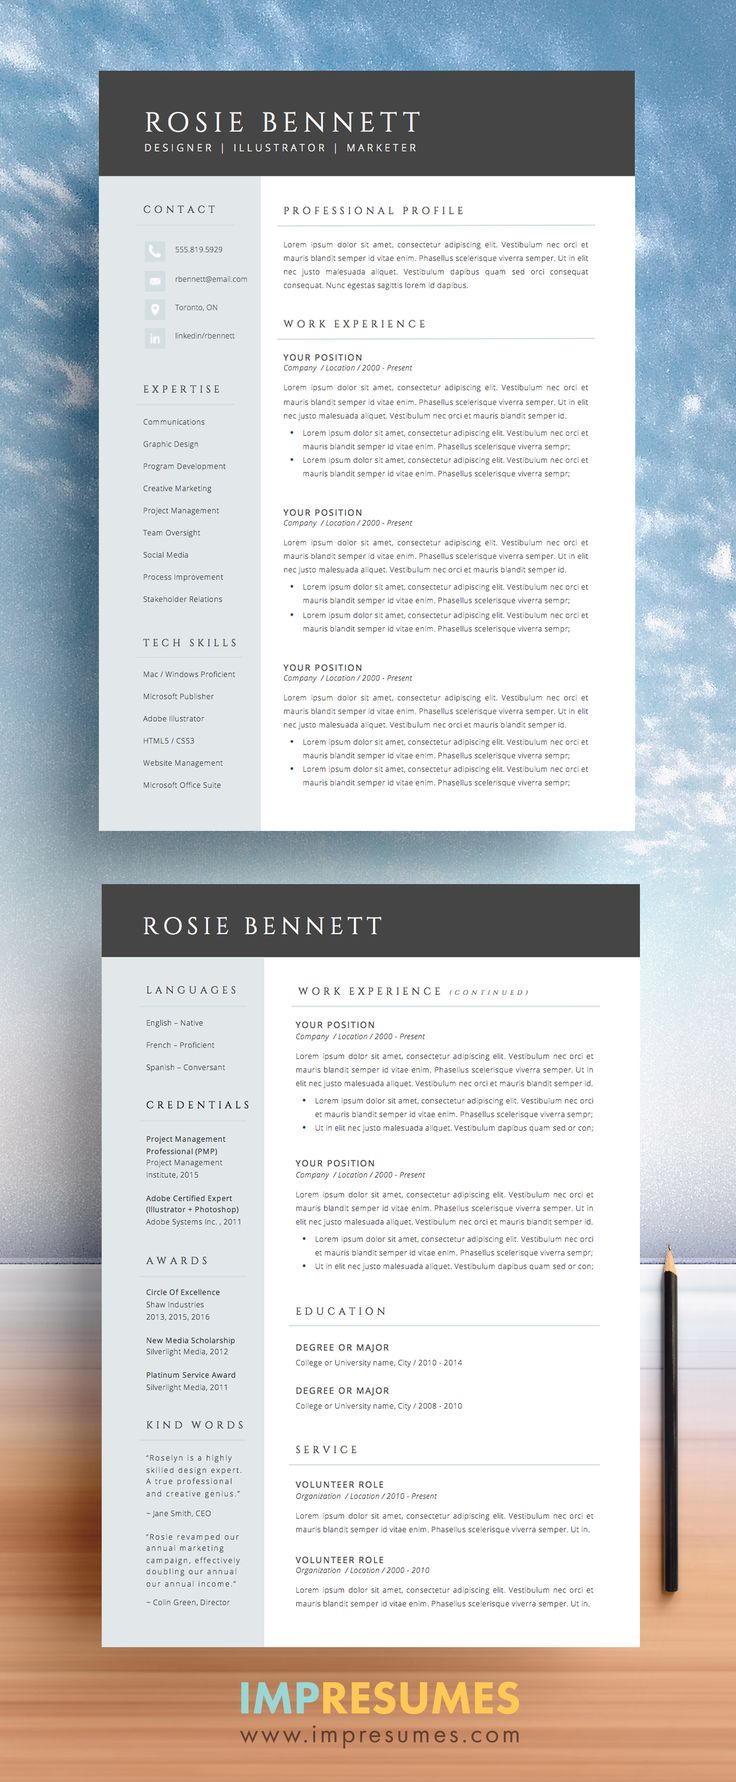 700+ best Resumes images on Pinterest | Resume templates, Cv ...